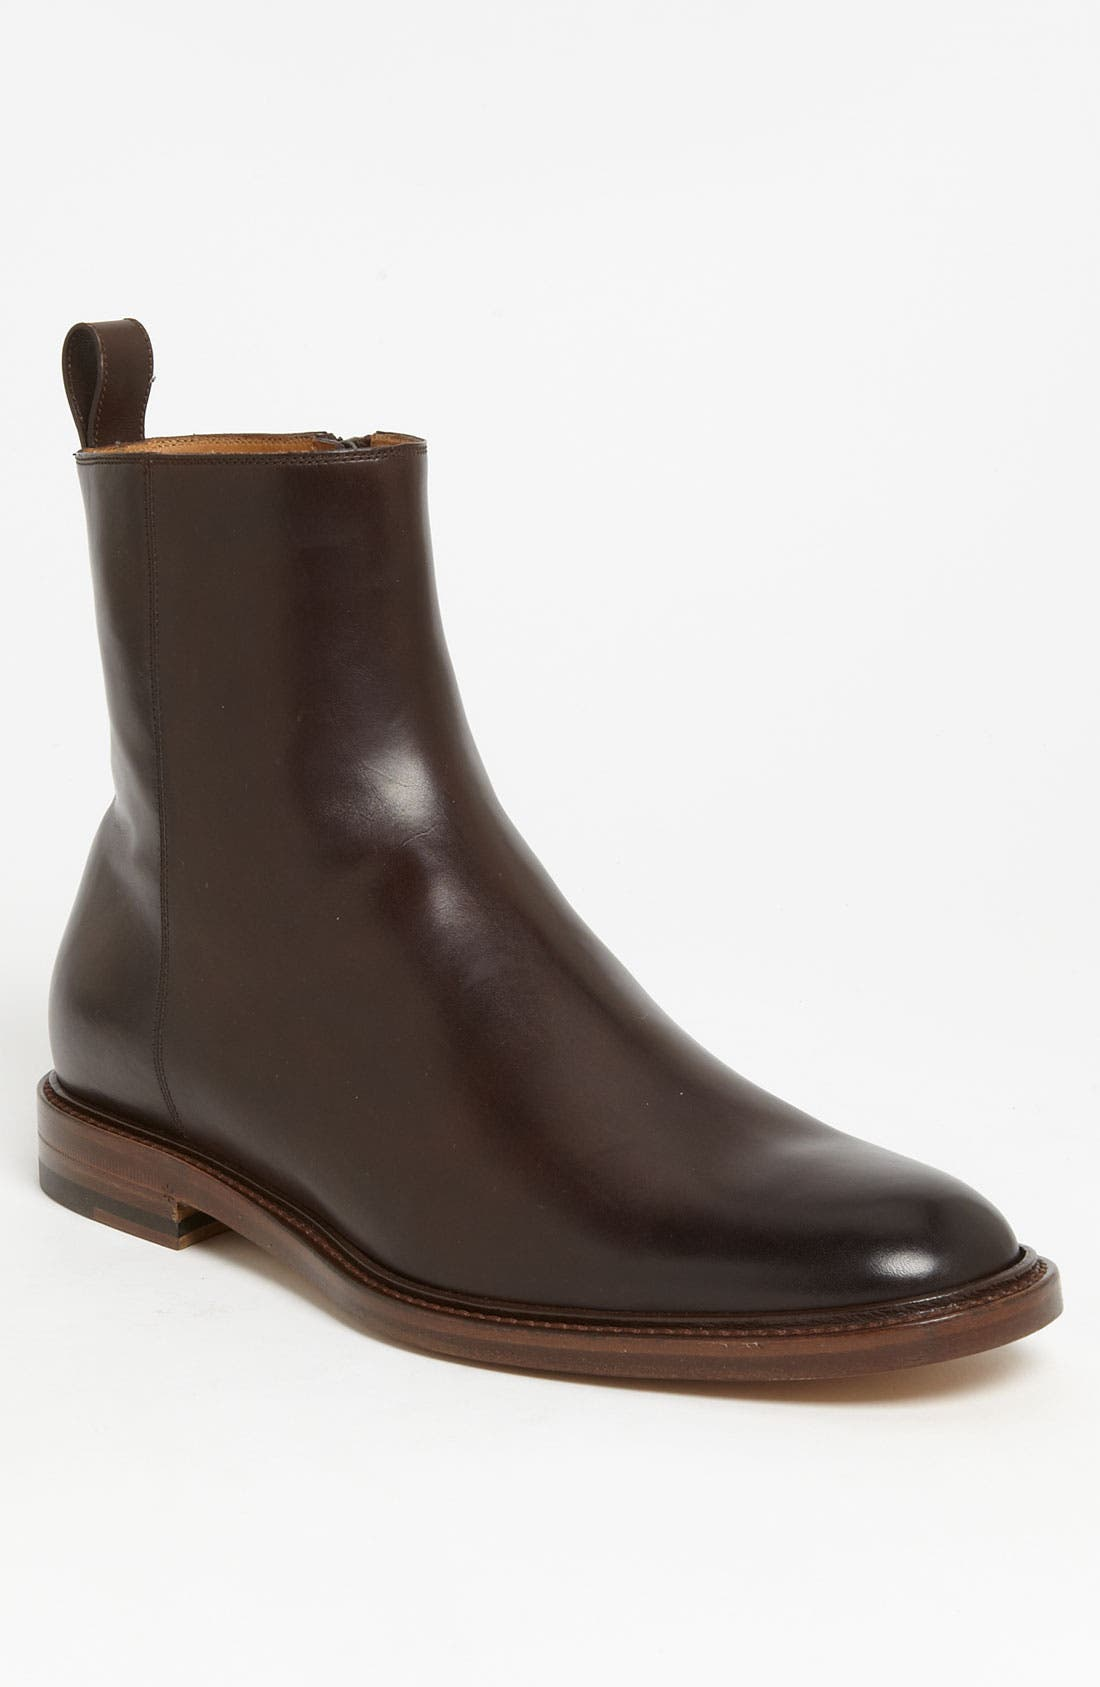 Alternate Image 1 Selected - Gucci 'Cezanne' Plain Toe Boot